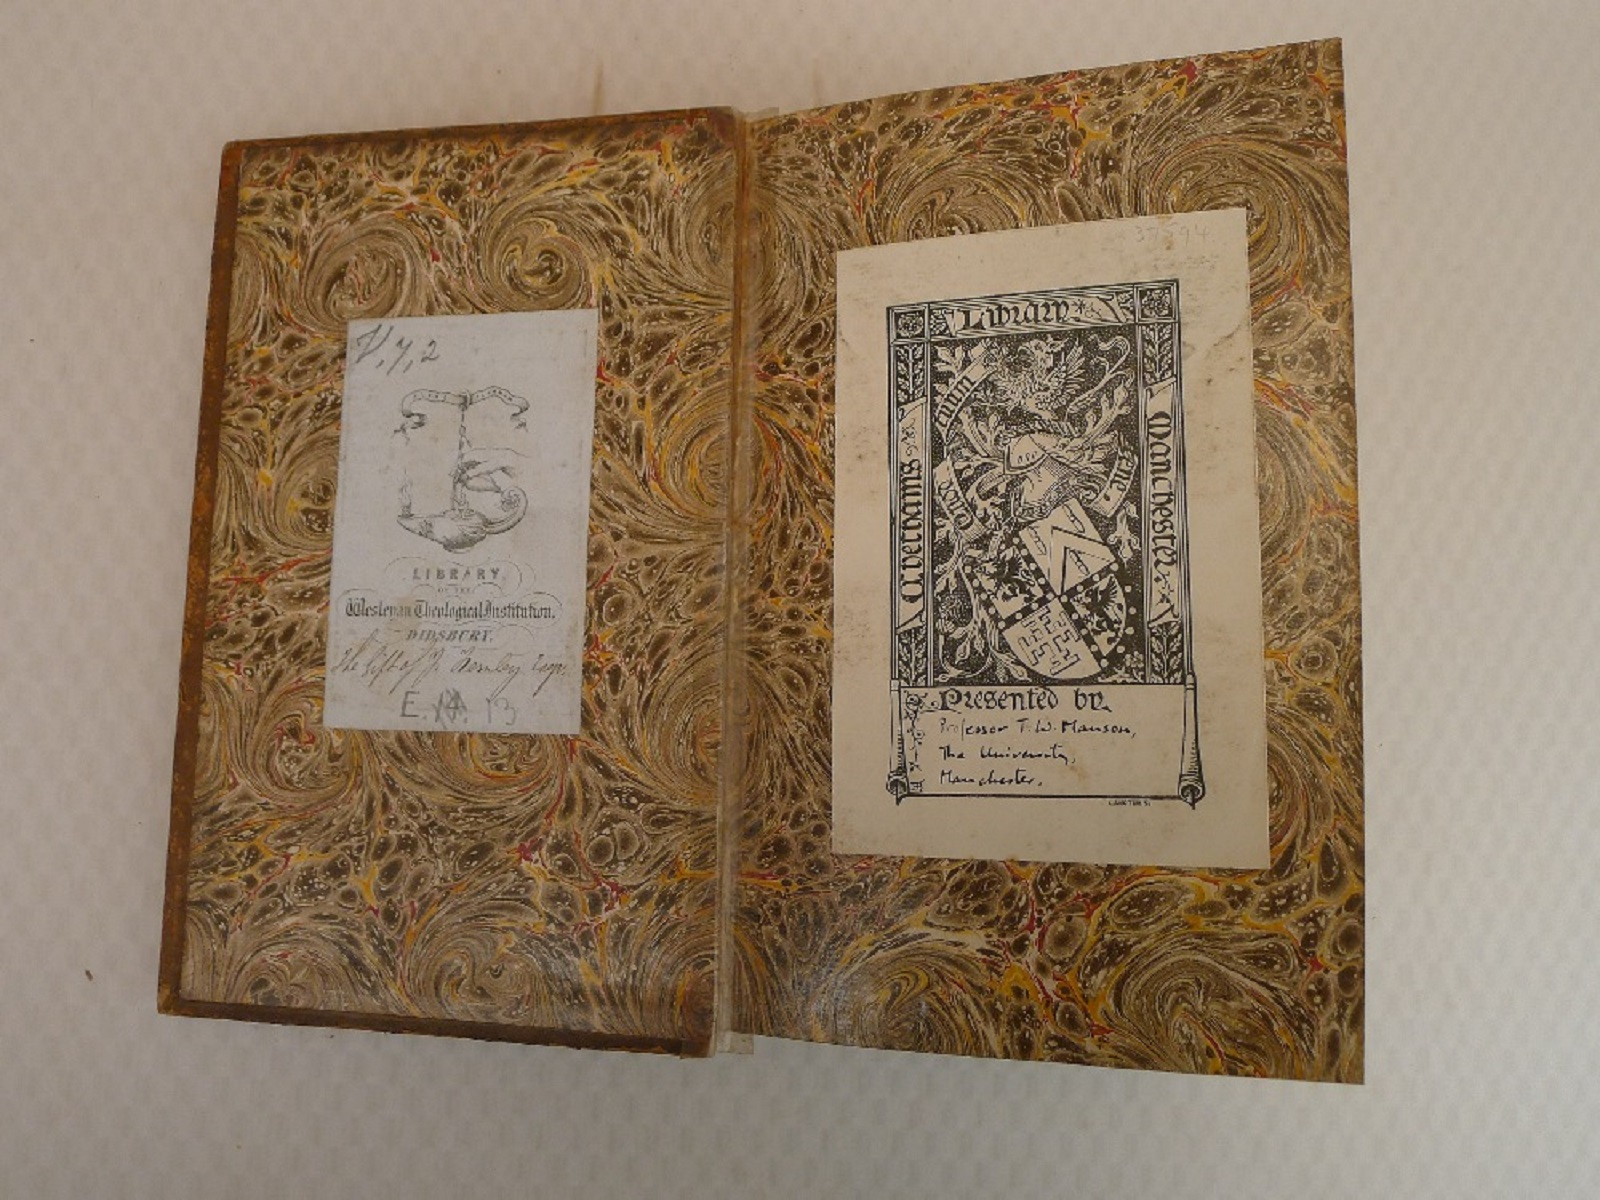 Volumes 1, 2, 3 and 6 of Bibliotheca Chethamensis (Catalogues of Books and Manuscripts) for the - Image 6 of 19